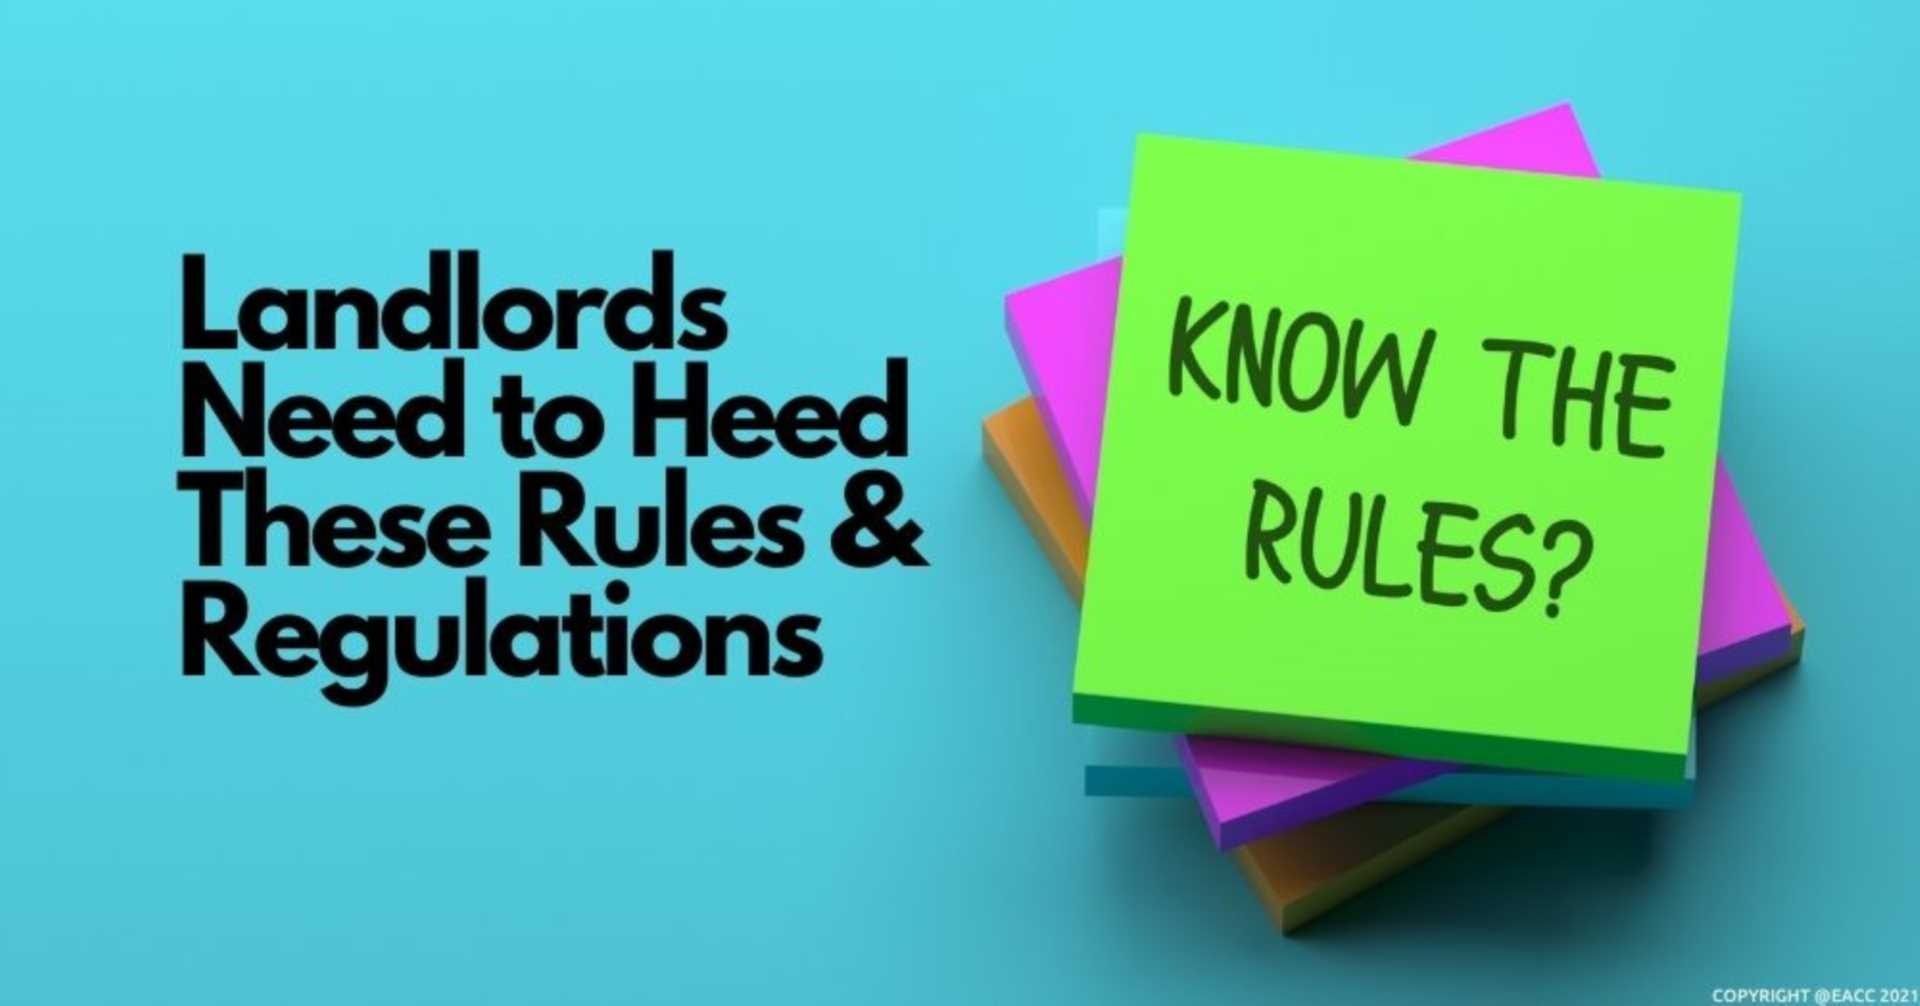 LANDLORDS NEED TO HEED THESE RULES AND REGULATIONS